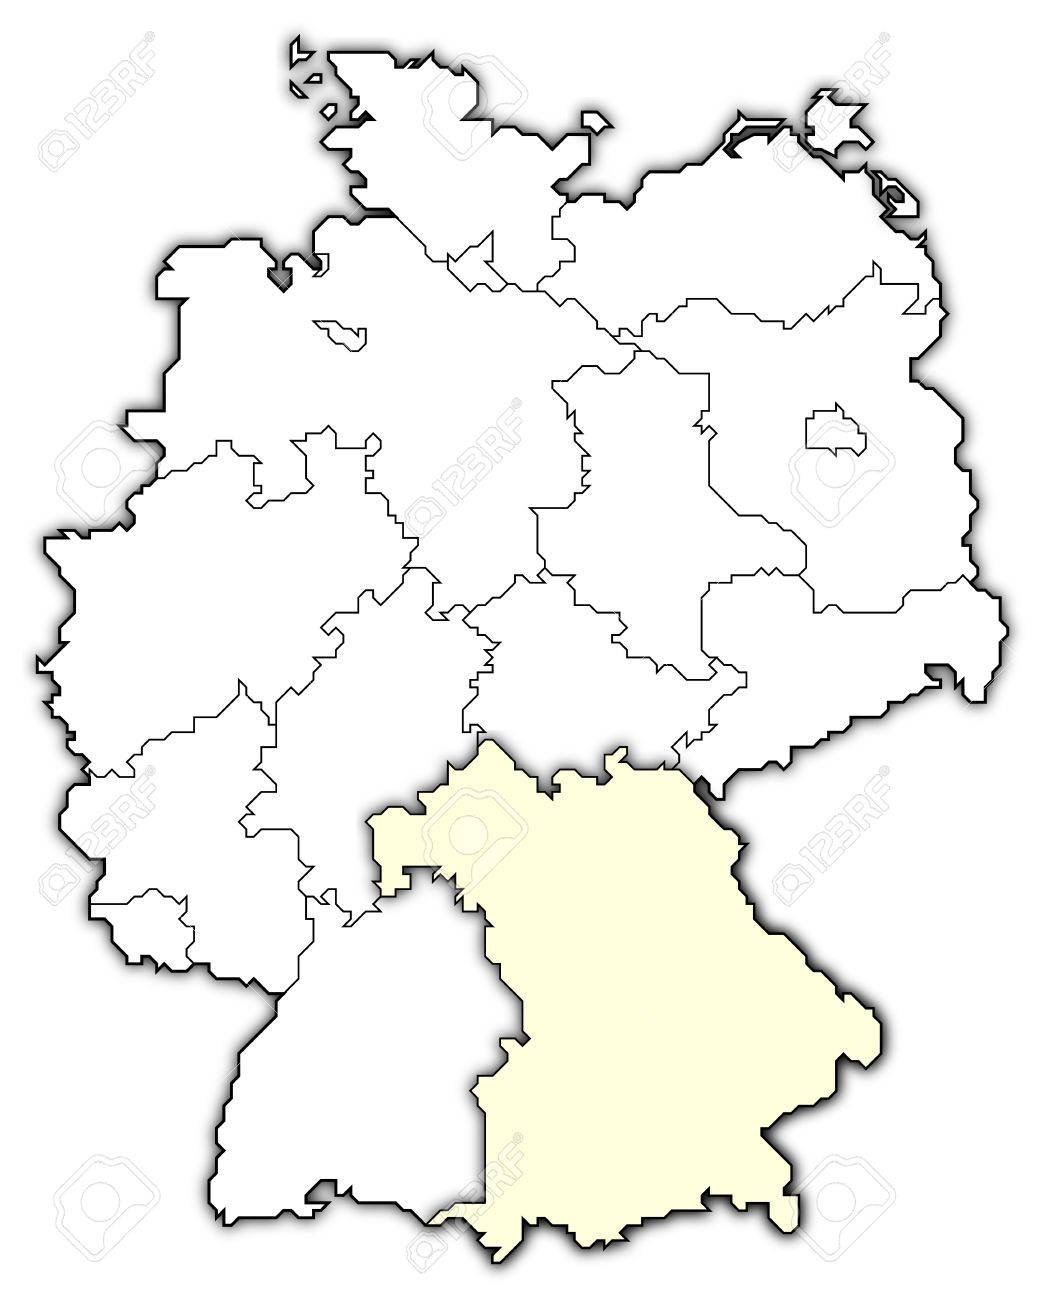 Germany Map Bavaria Highlighted Stock Photo Picture And Royalty - Germany map bavaria